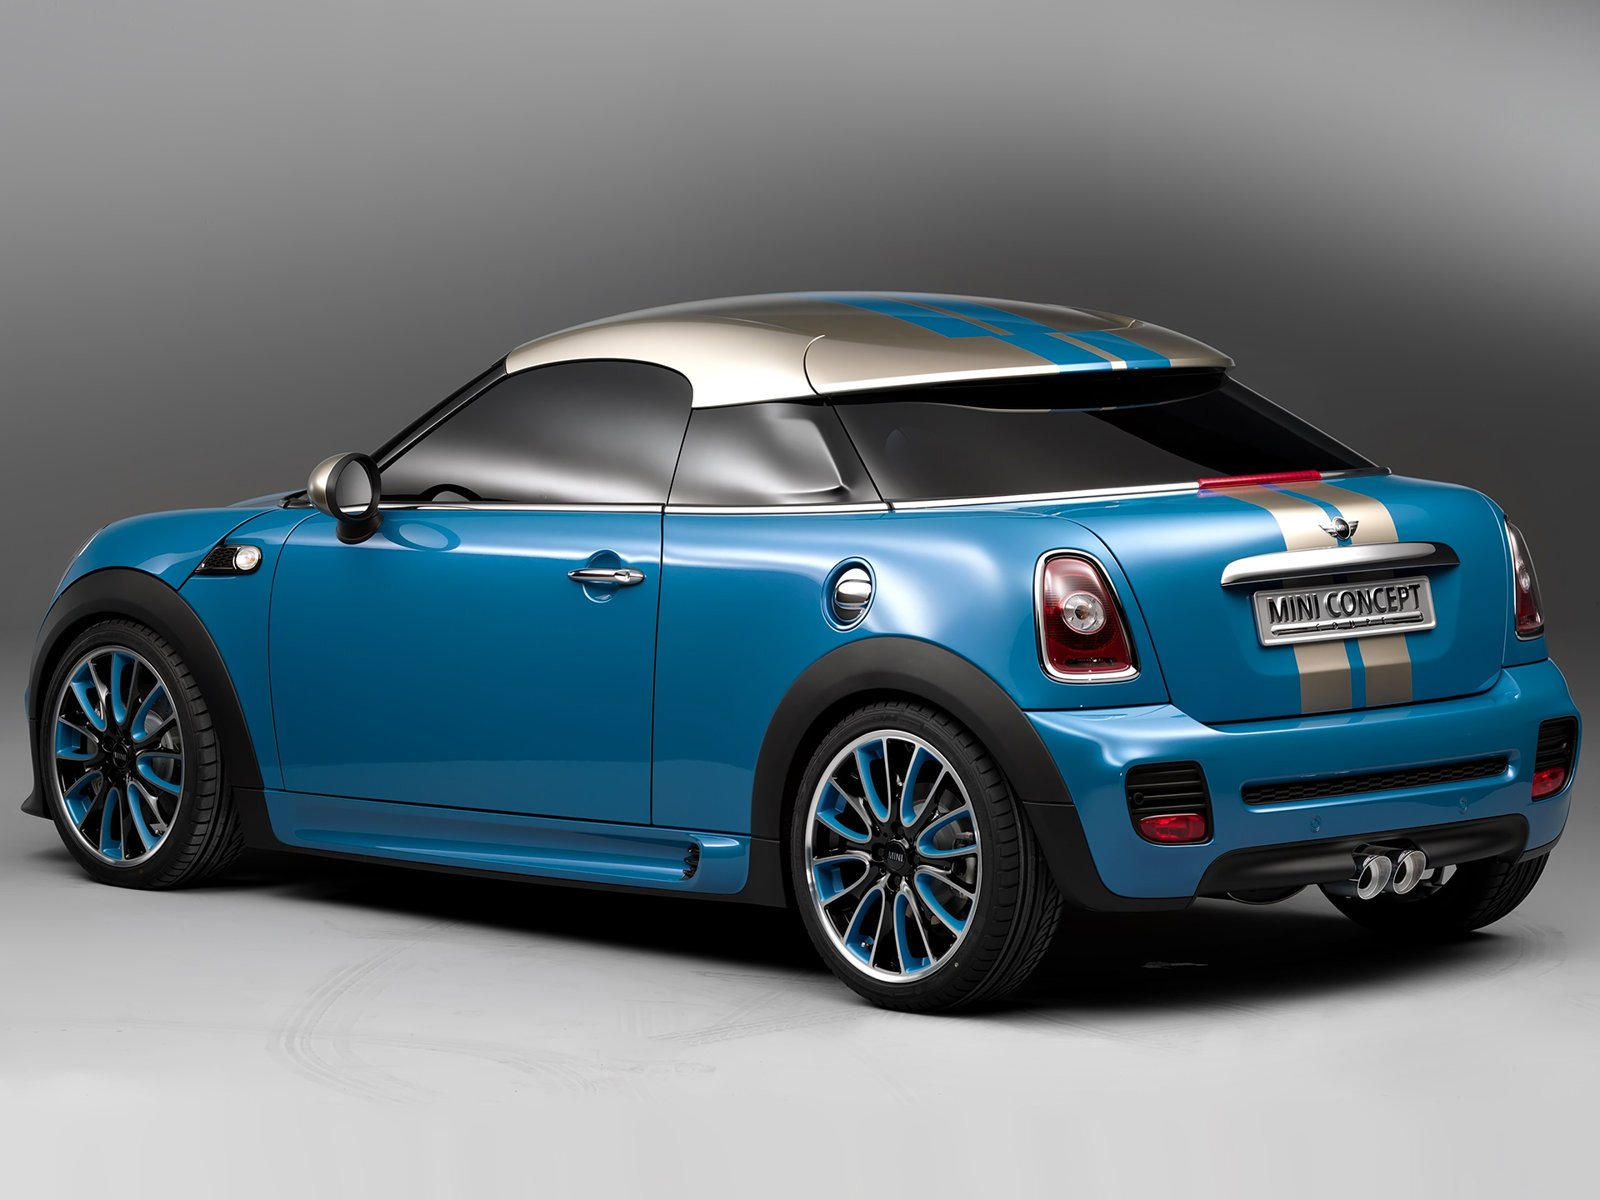 Gallery MINI Mini Cooper Coupe Concept wallpaper Mini Cooper Coupe 1600x1200